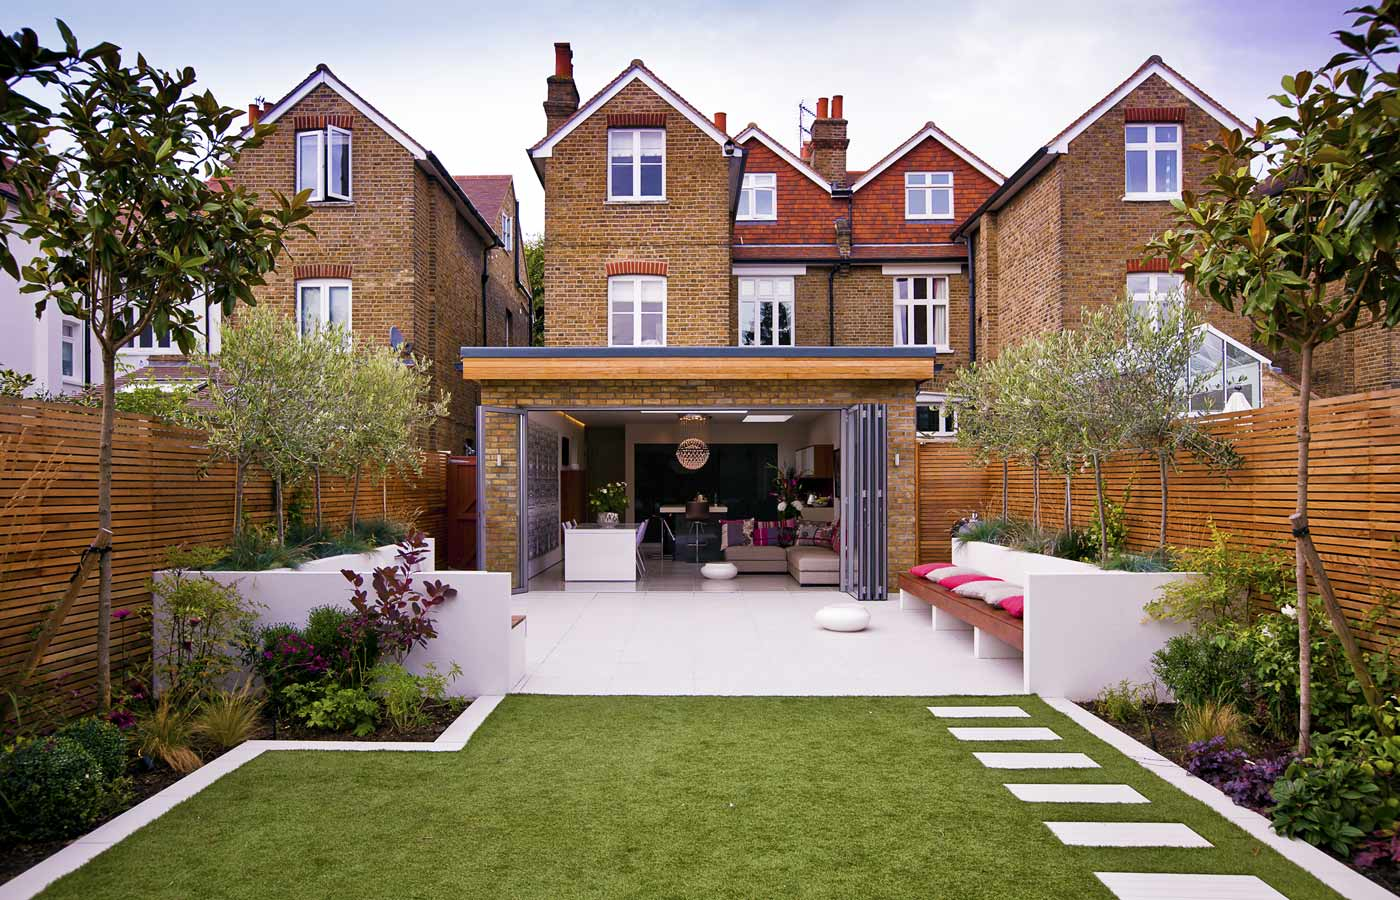 View from the lawn of the terrace and house in Twickenham, West London